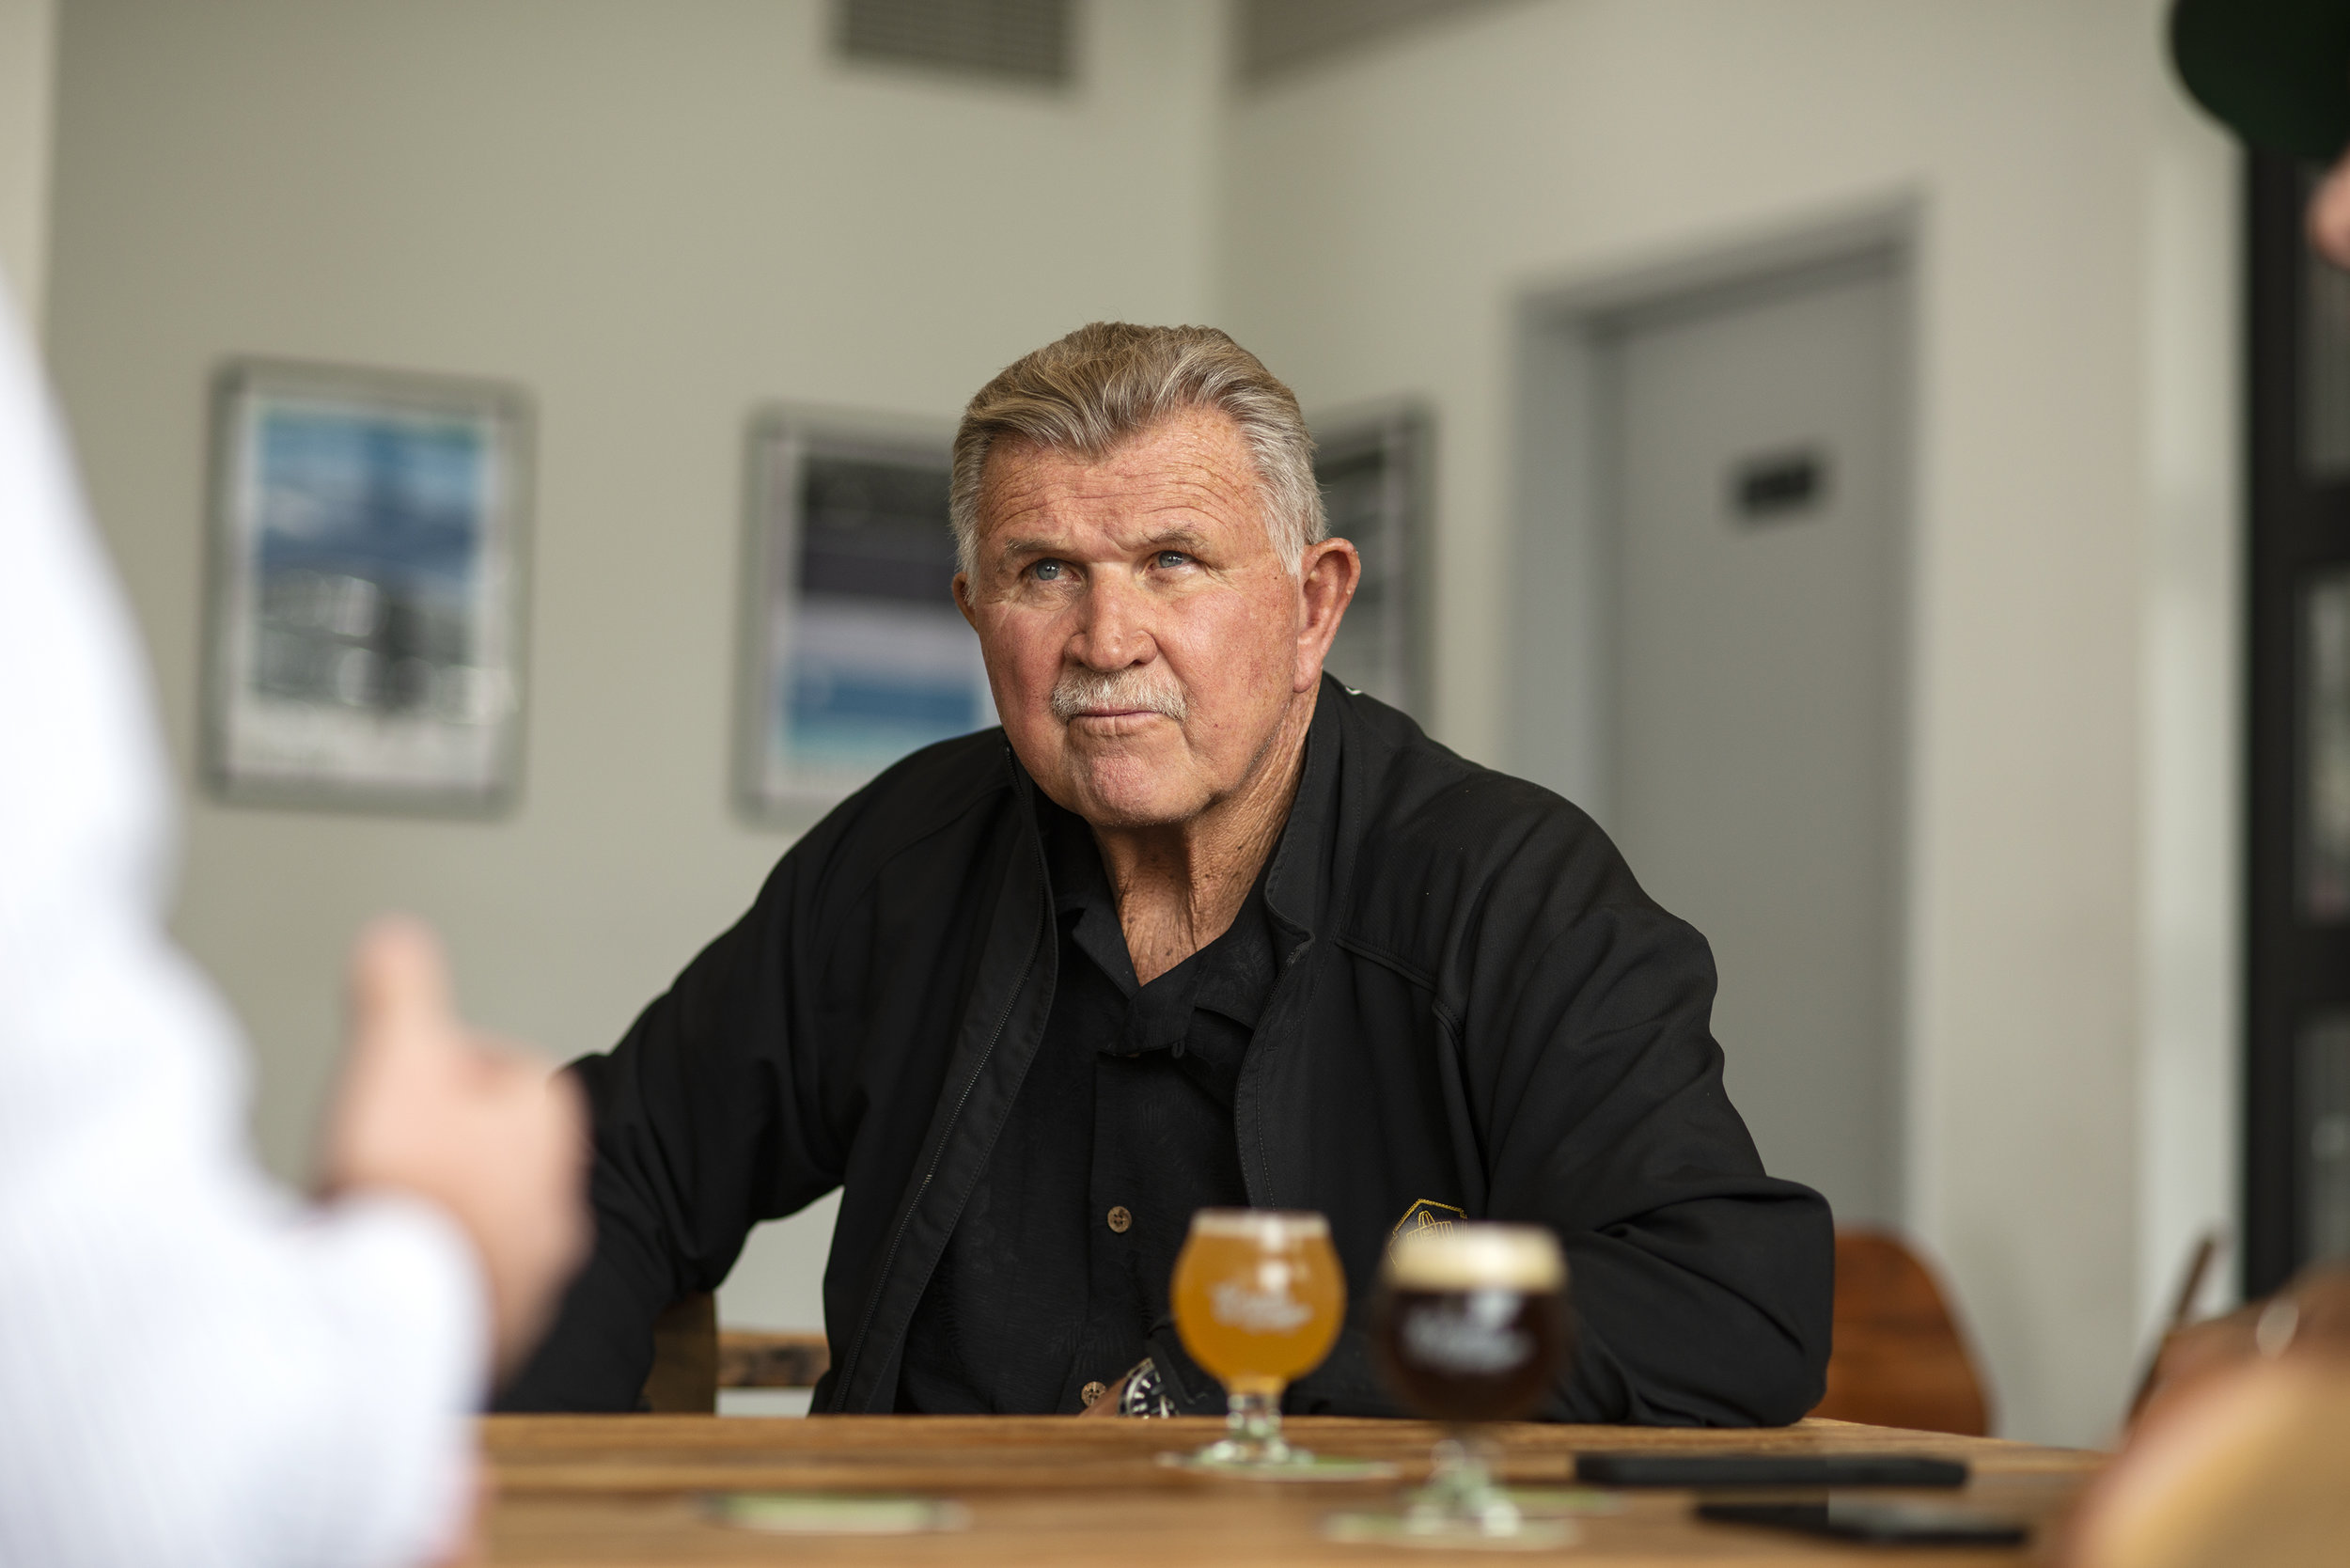 A Beer with Coach Mike Ditka